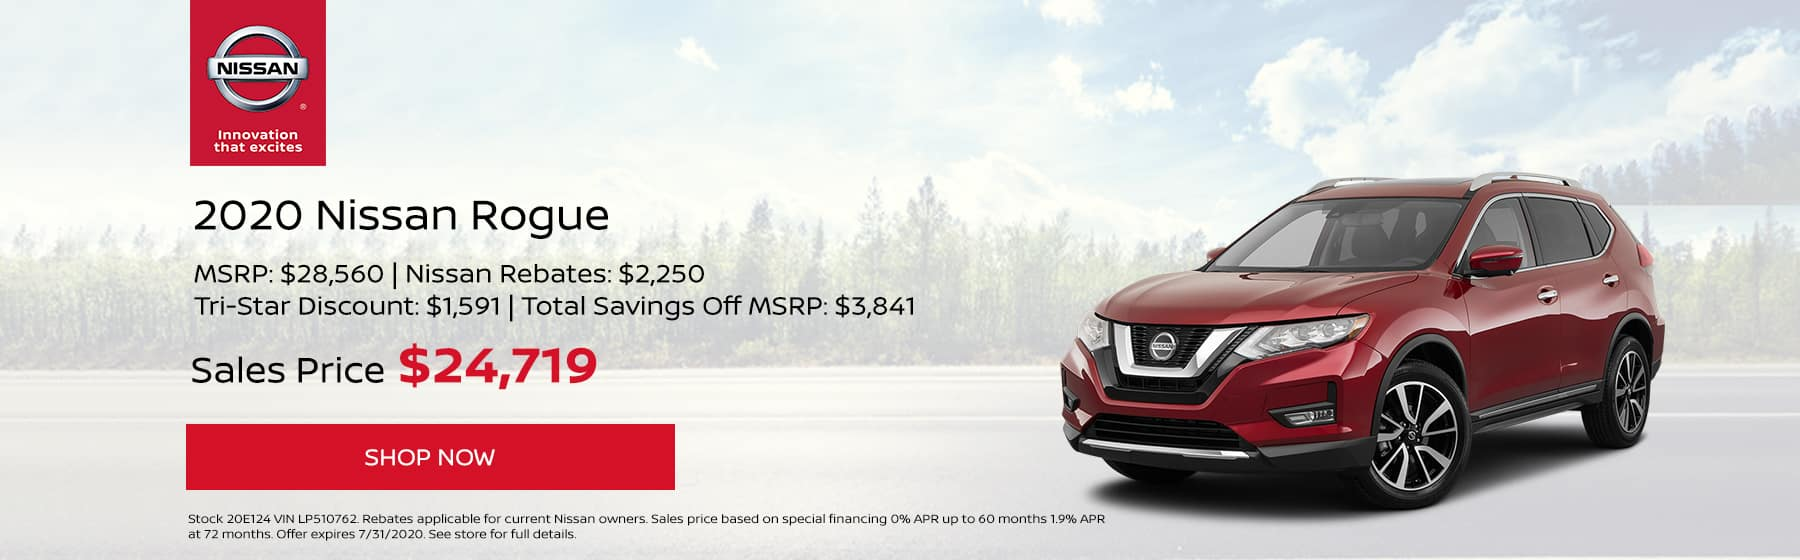 2020 Nissan Rogue July Offer